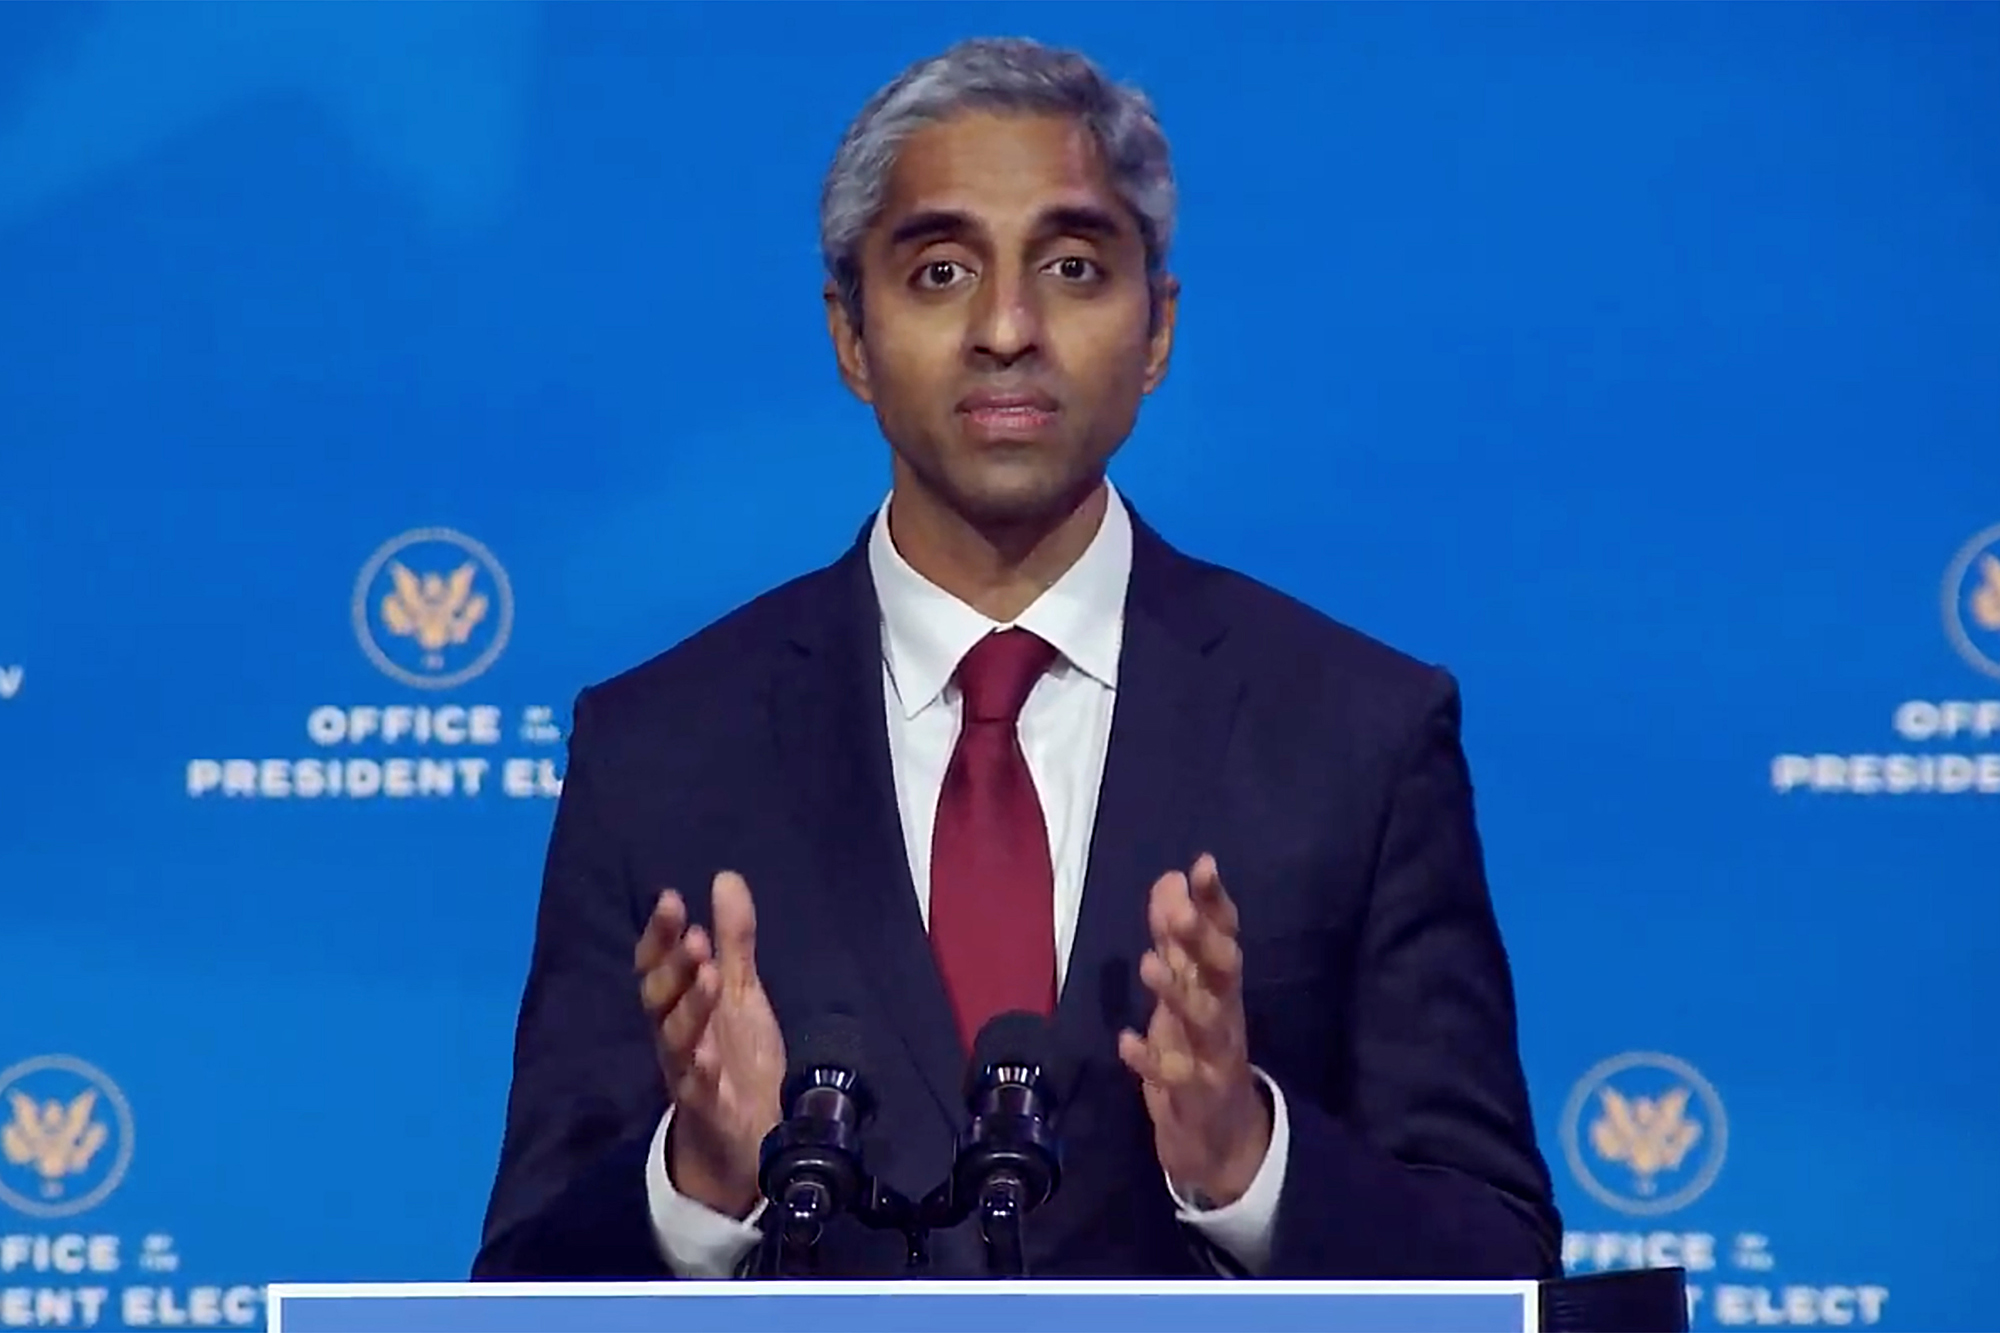 Surgeon general pick outlines COVID-19 vaccine timeline